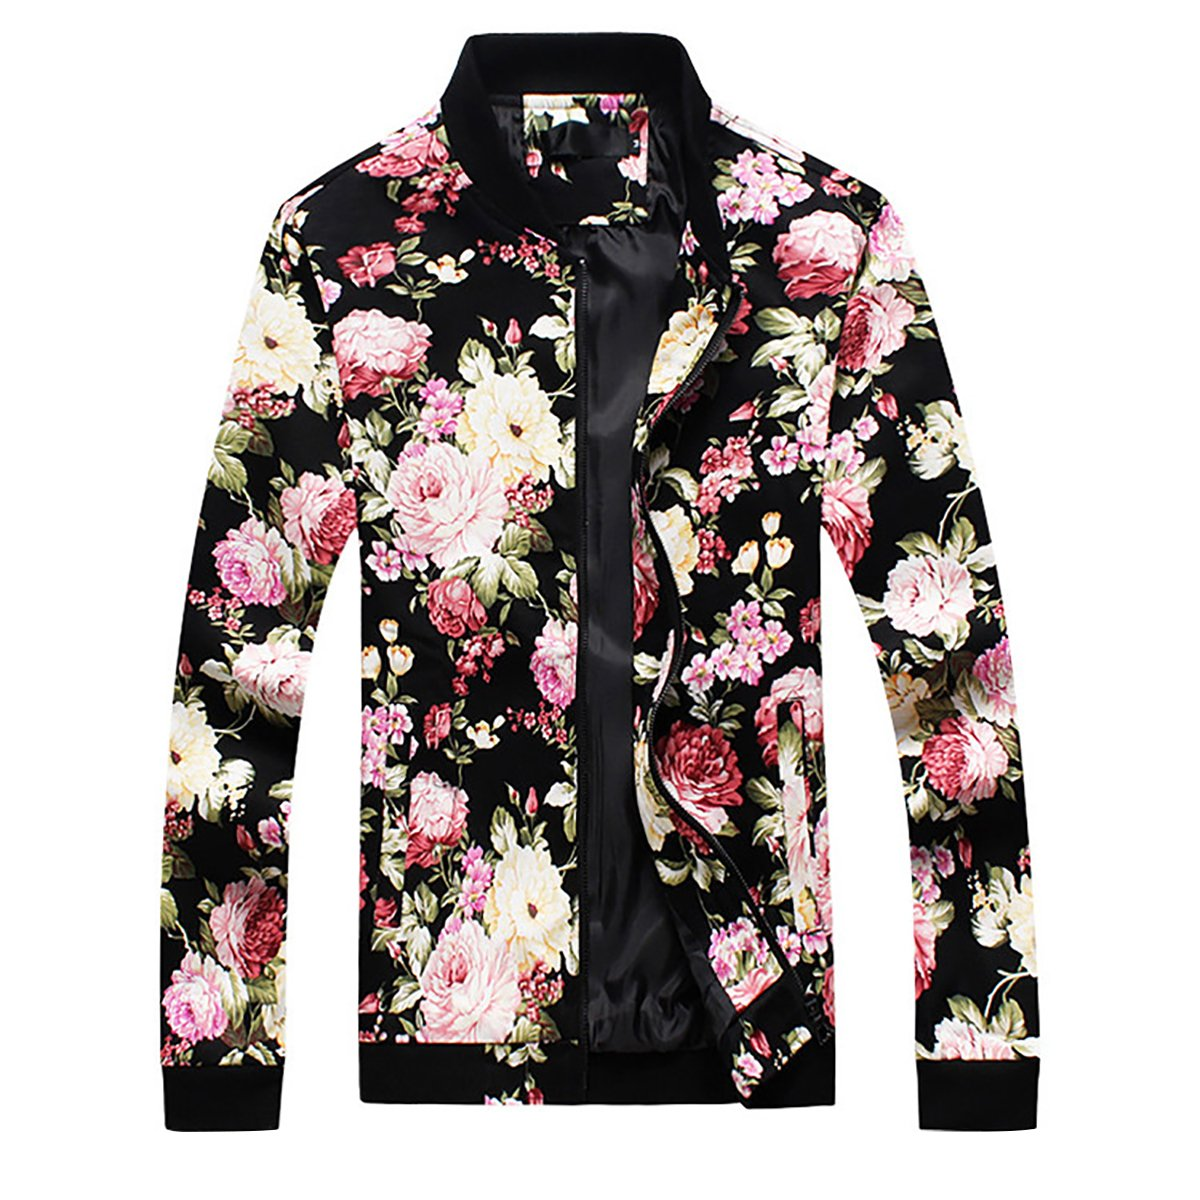 Mens Slim Fit Jacket Lightweight Sportswear Casual Long Sleeve Bomber Jacket,Picture Color,Large